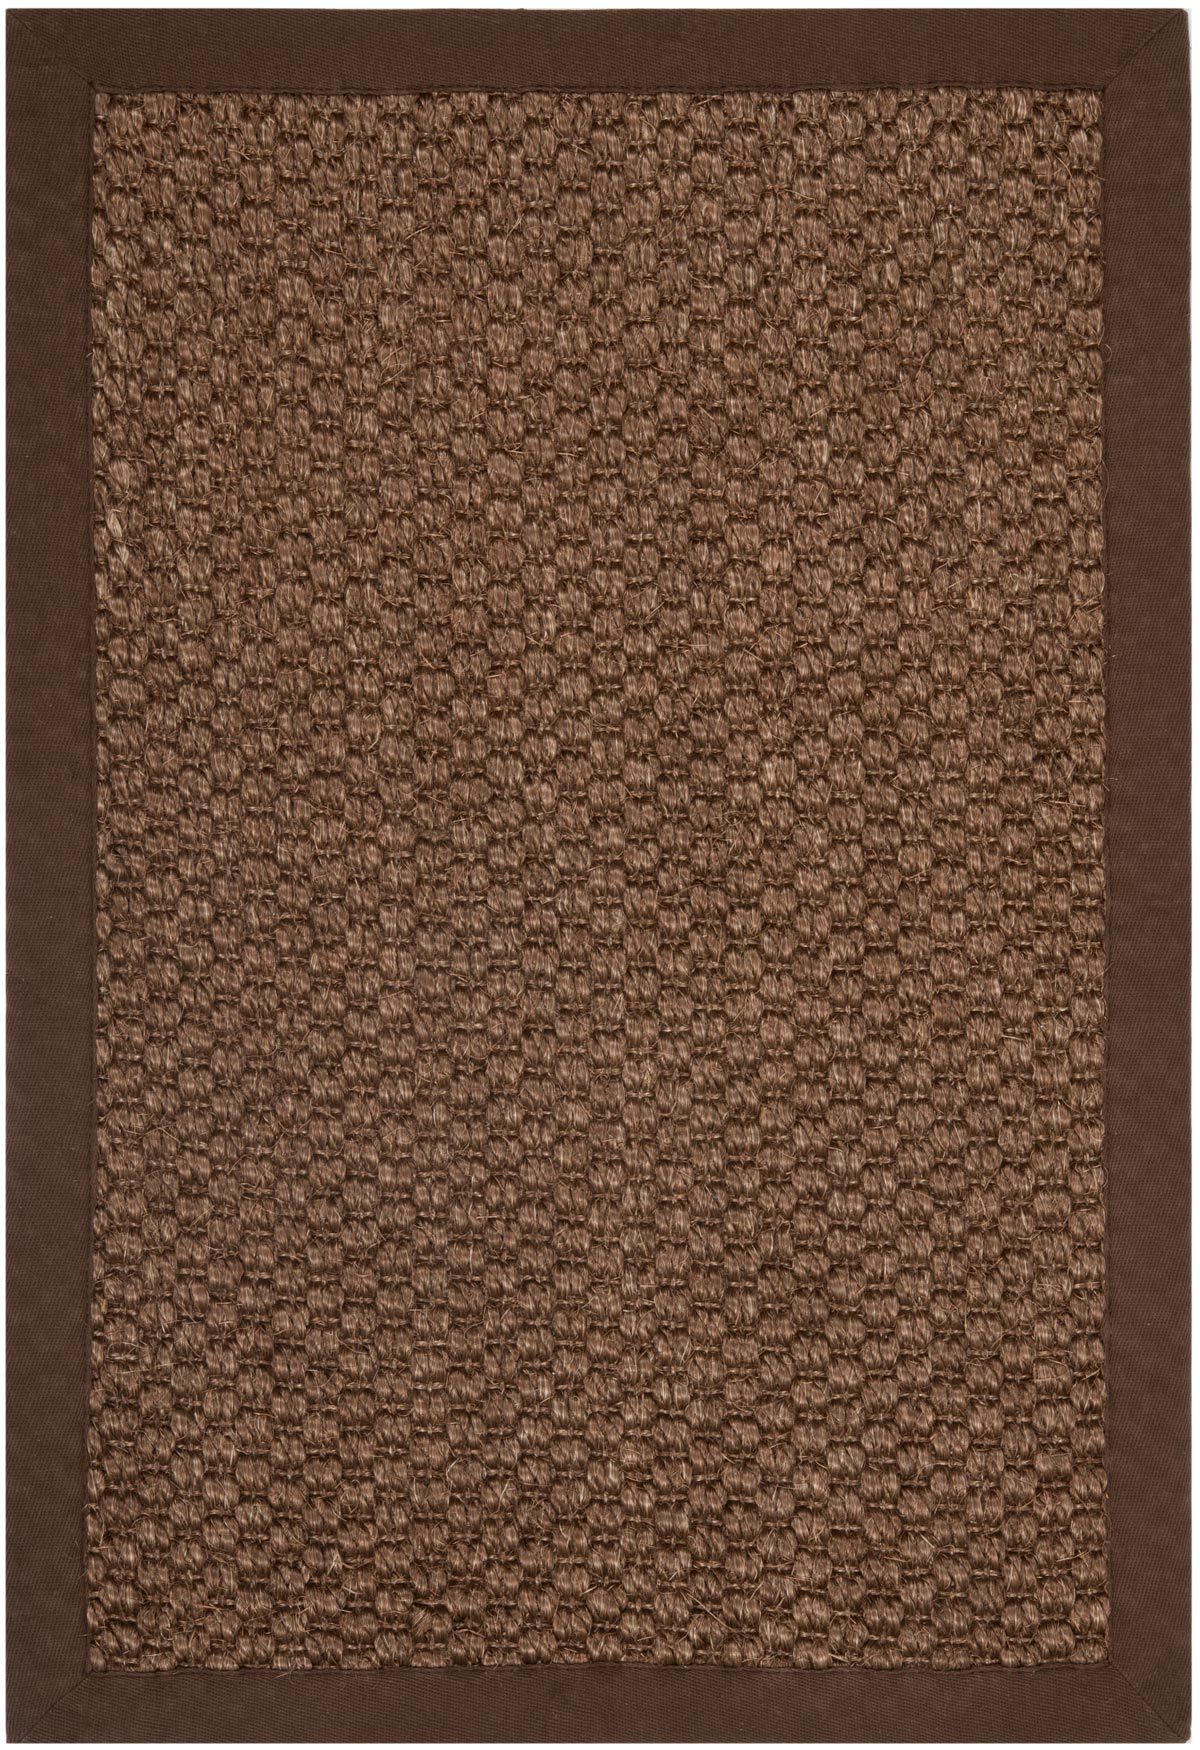 living amazon fashion look soft mats wool indoor or jute most fiber tremendous brings which forward the diamond tips softer ideas room rug sisal outdoor natural herringbone rugs is area